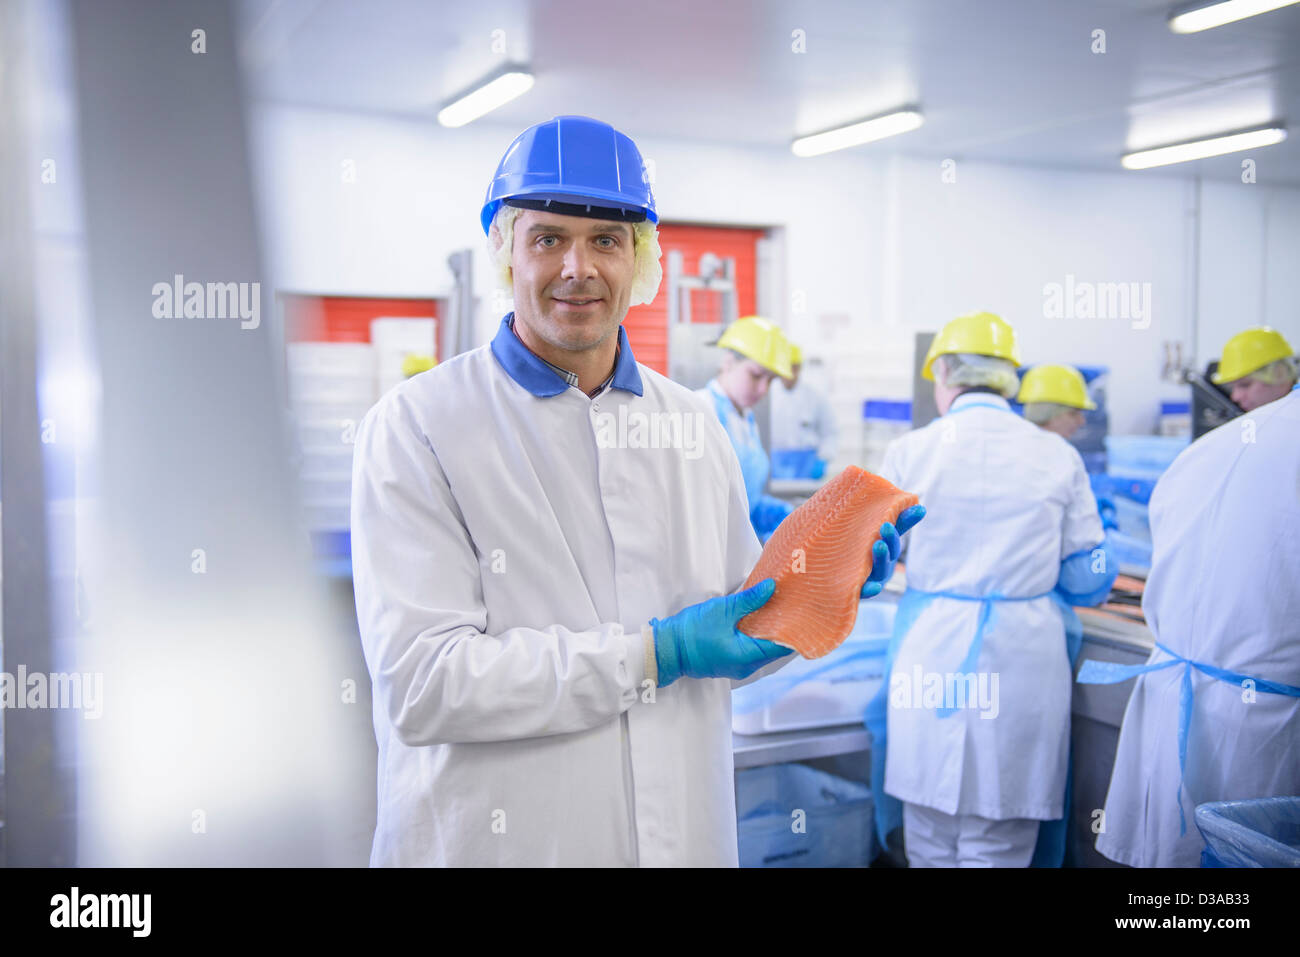 Portrait of worker holding salmon fillet in food factory, smiling - Stock Image